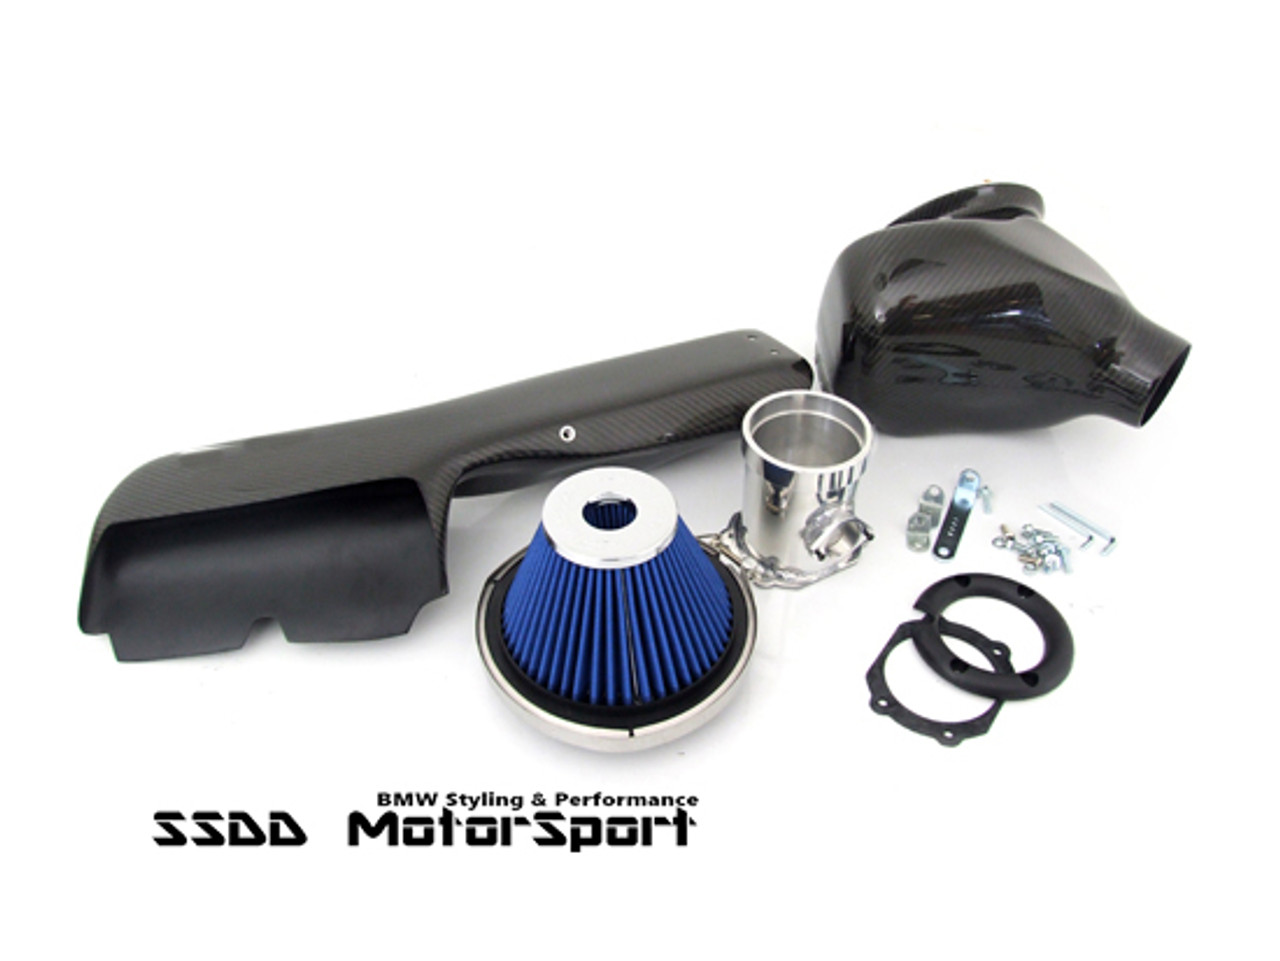 Bmw E46 M3 S54 Carbon Ram Air Intake System Ssdd Motorsport Ltd